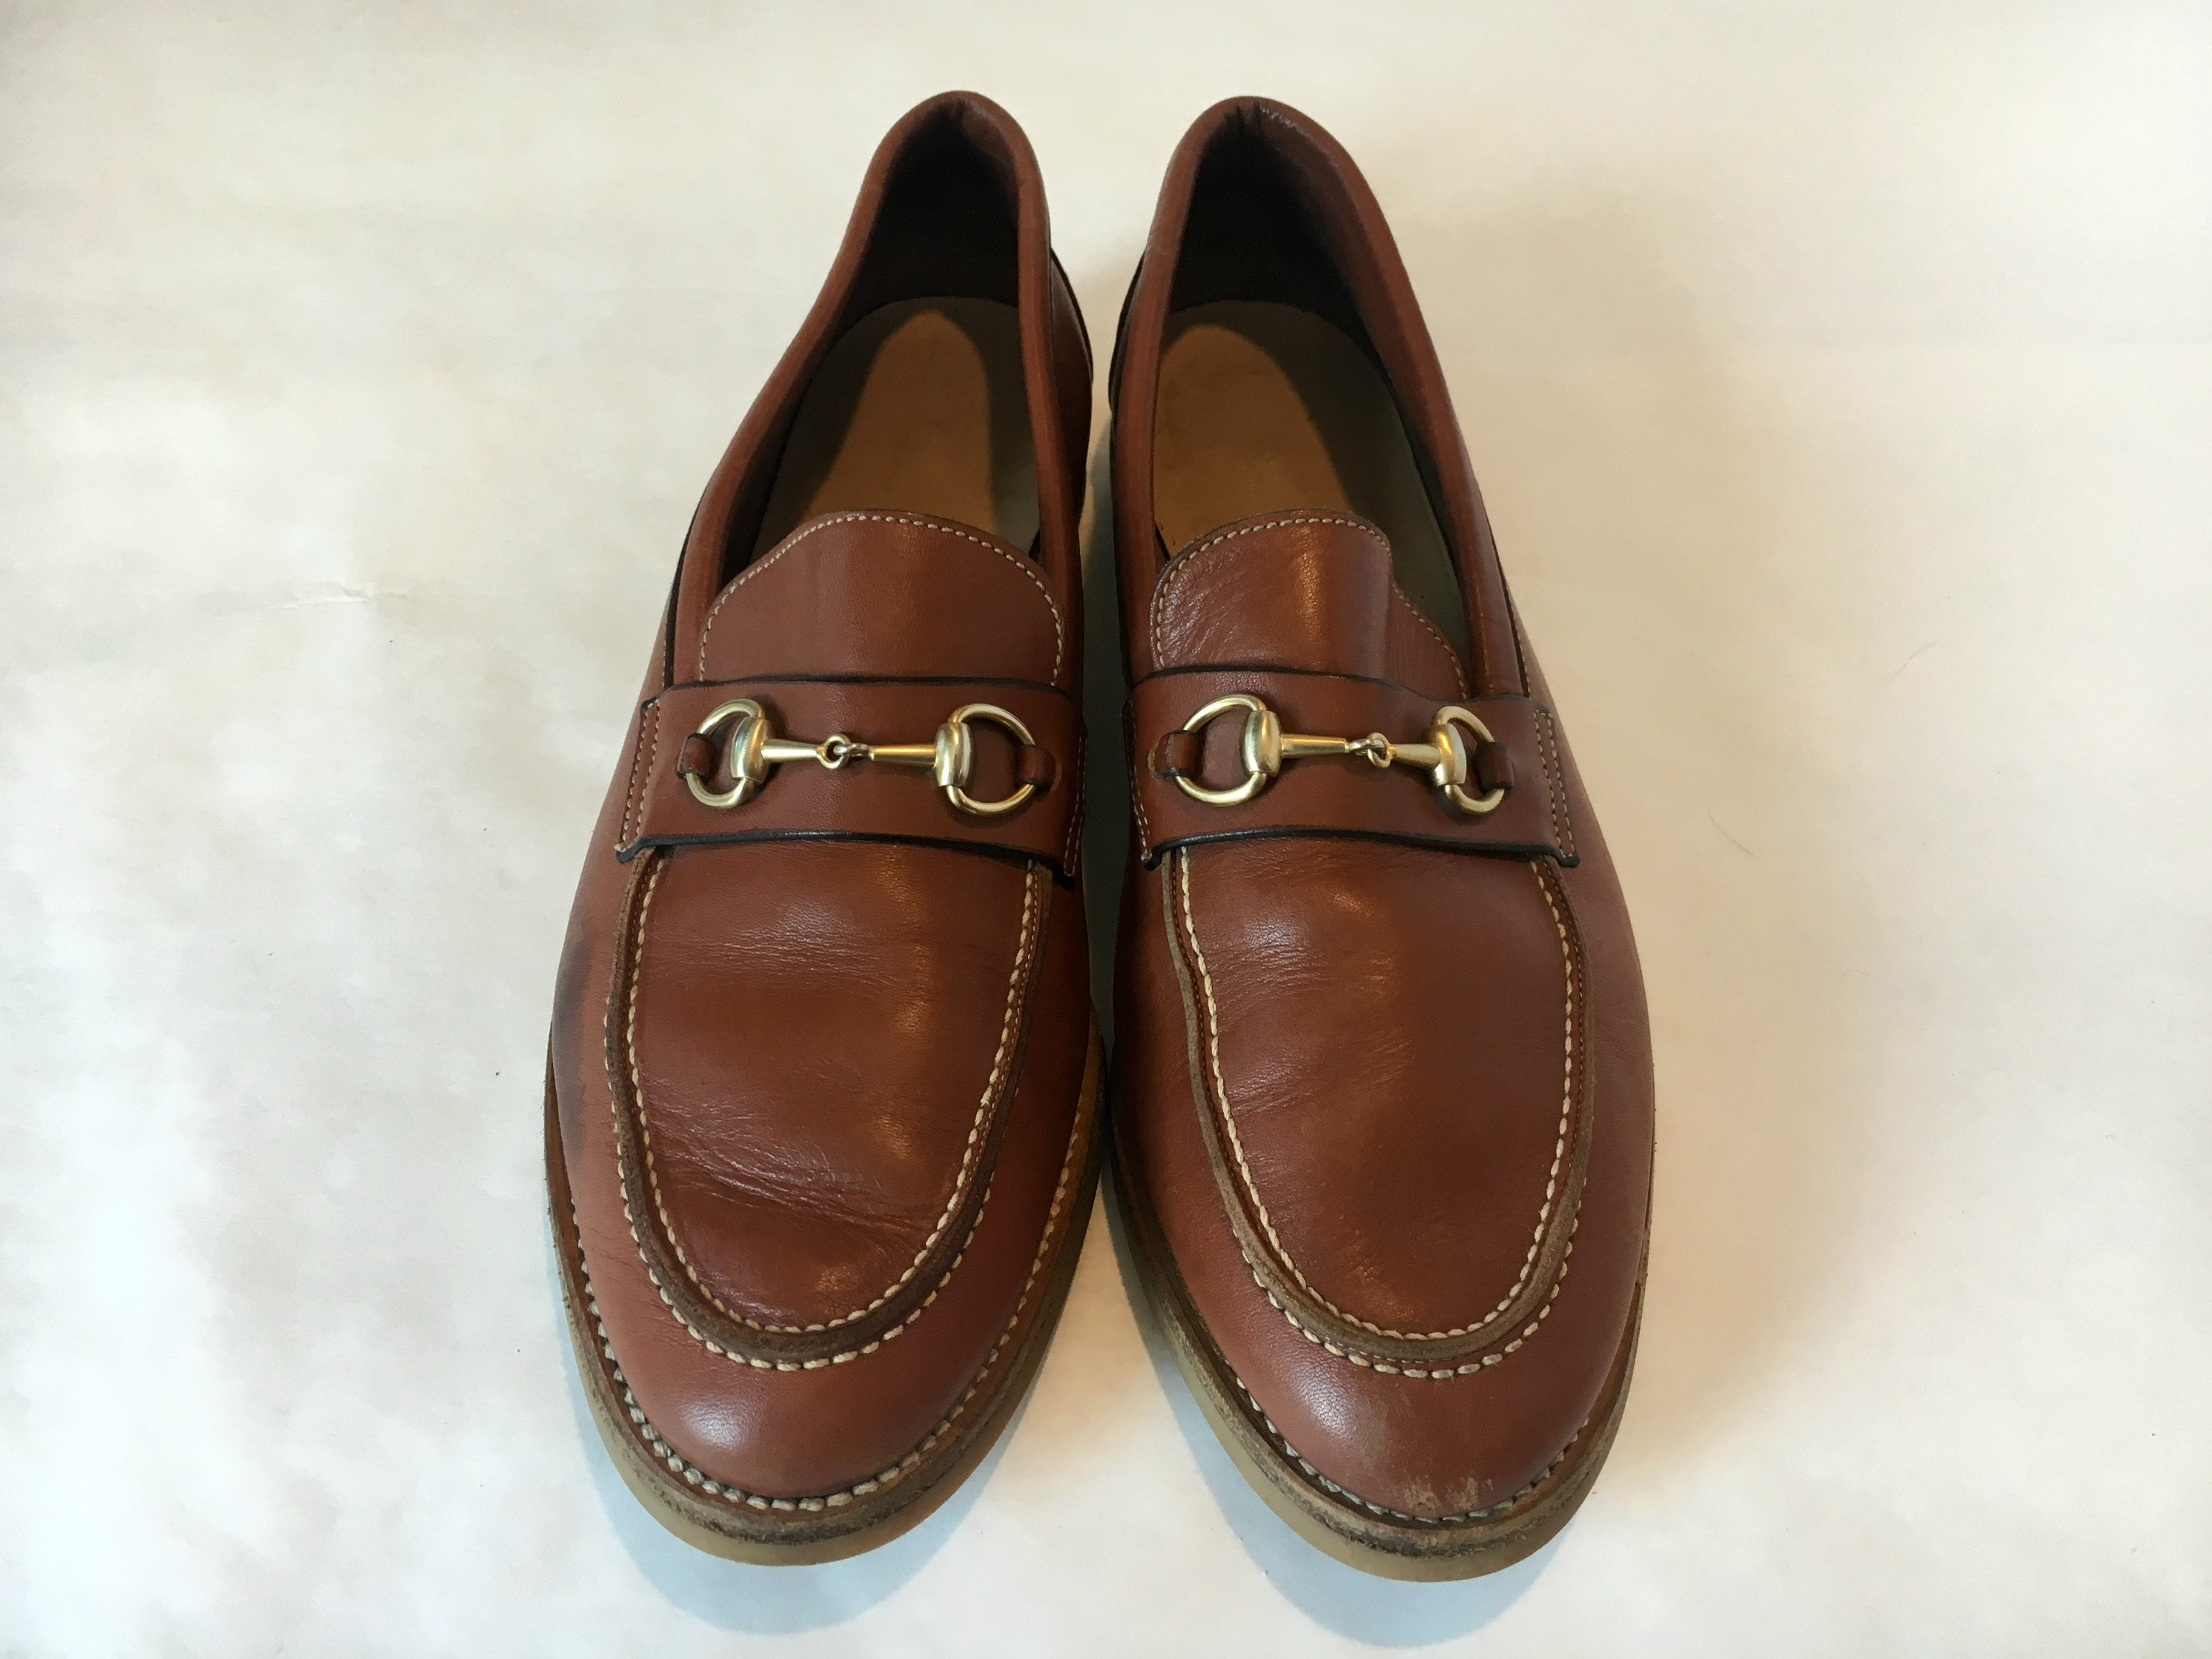 Gucci Cognac Leather Women's Horsebit Loafers